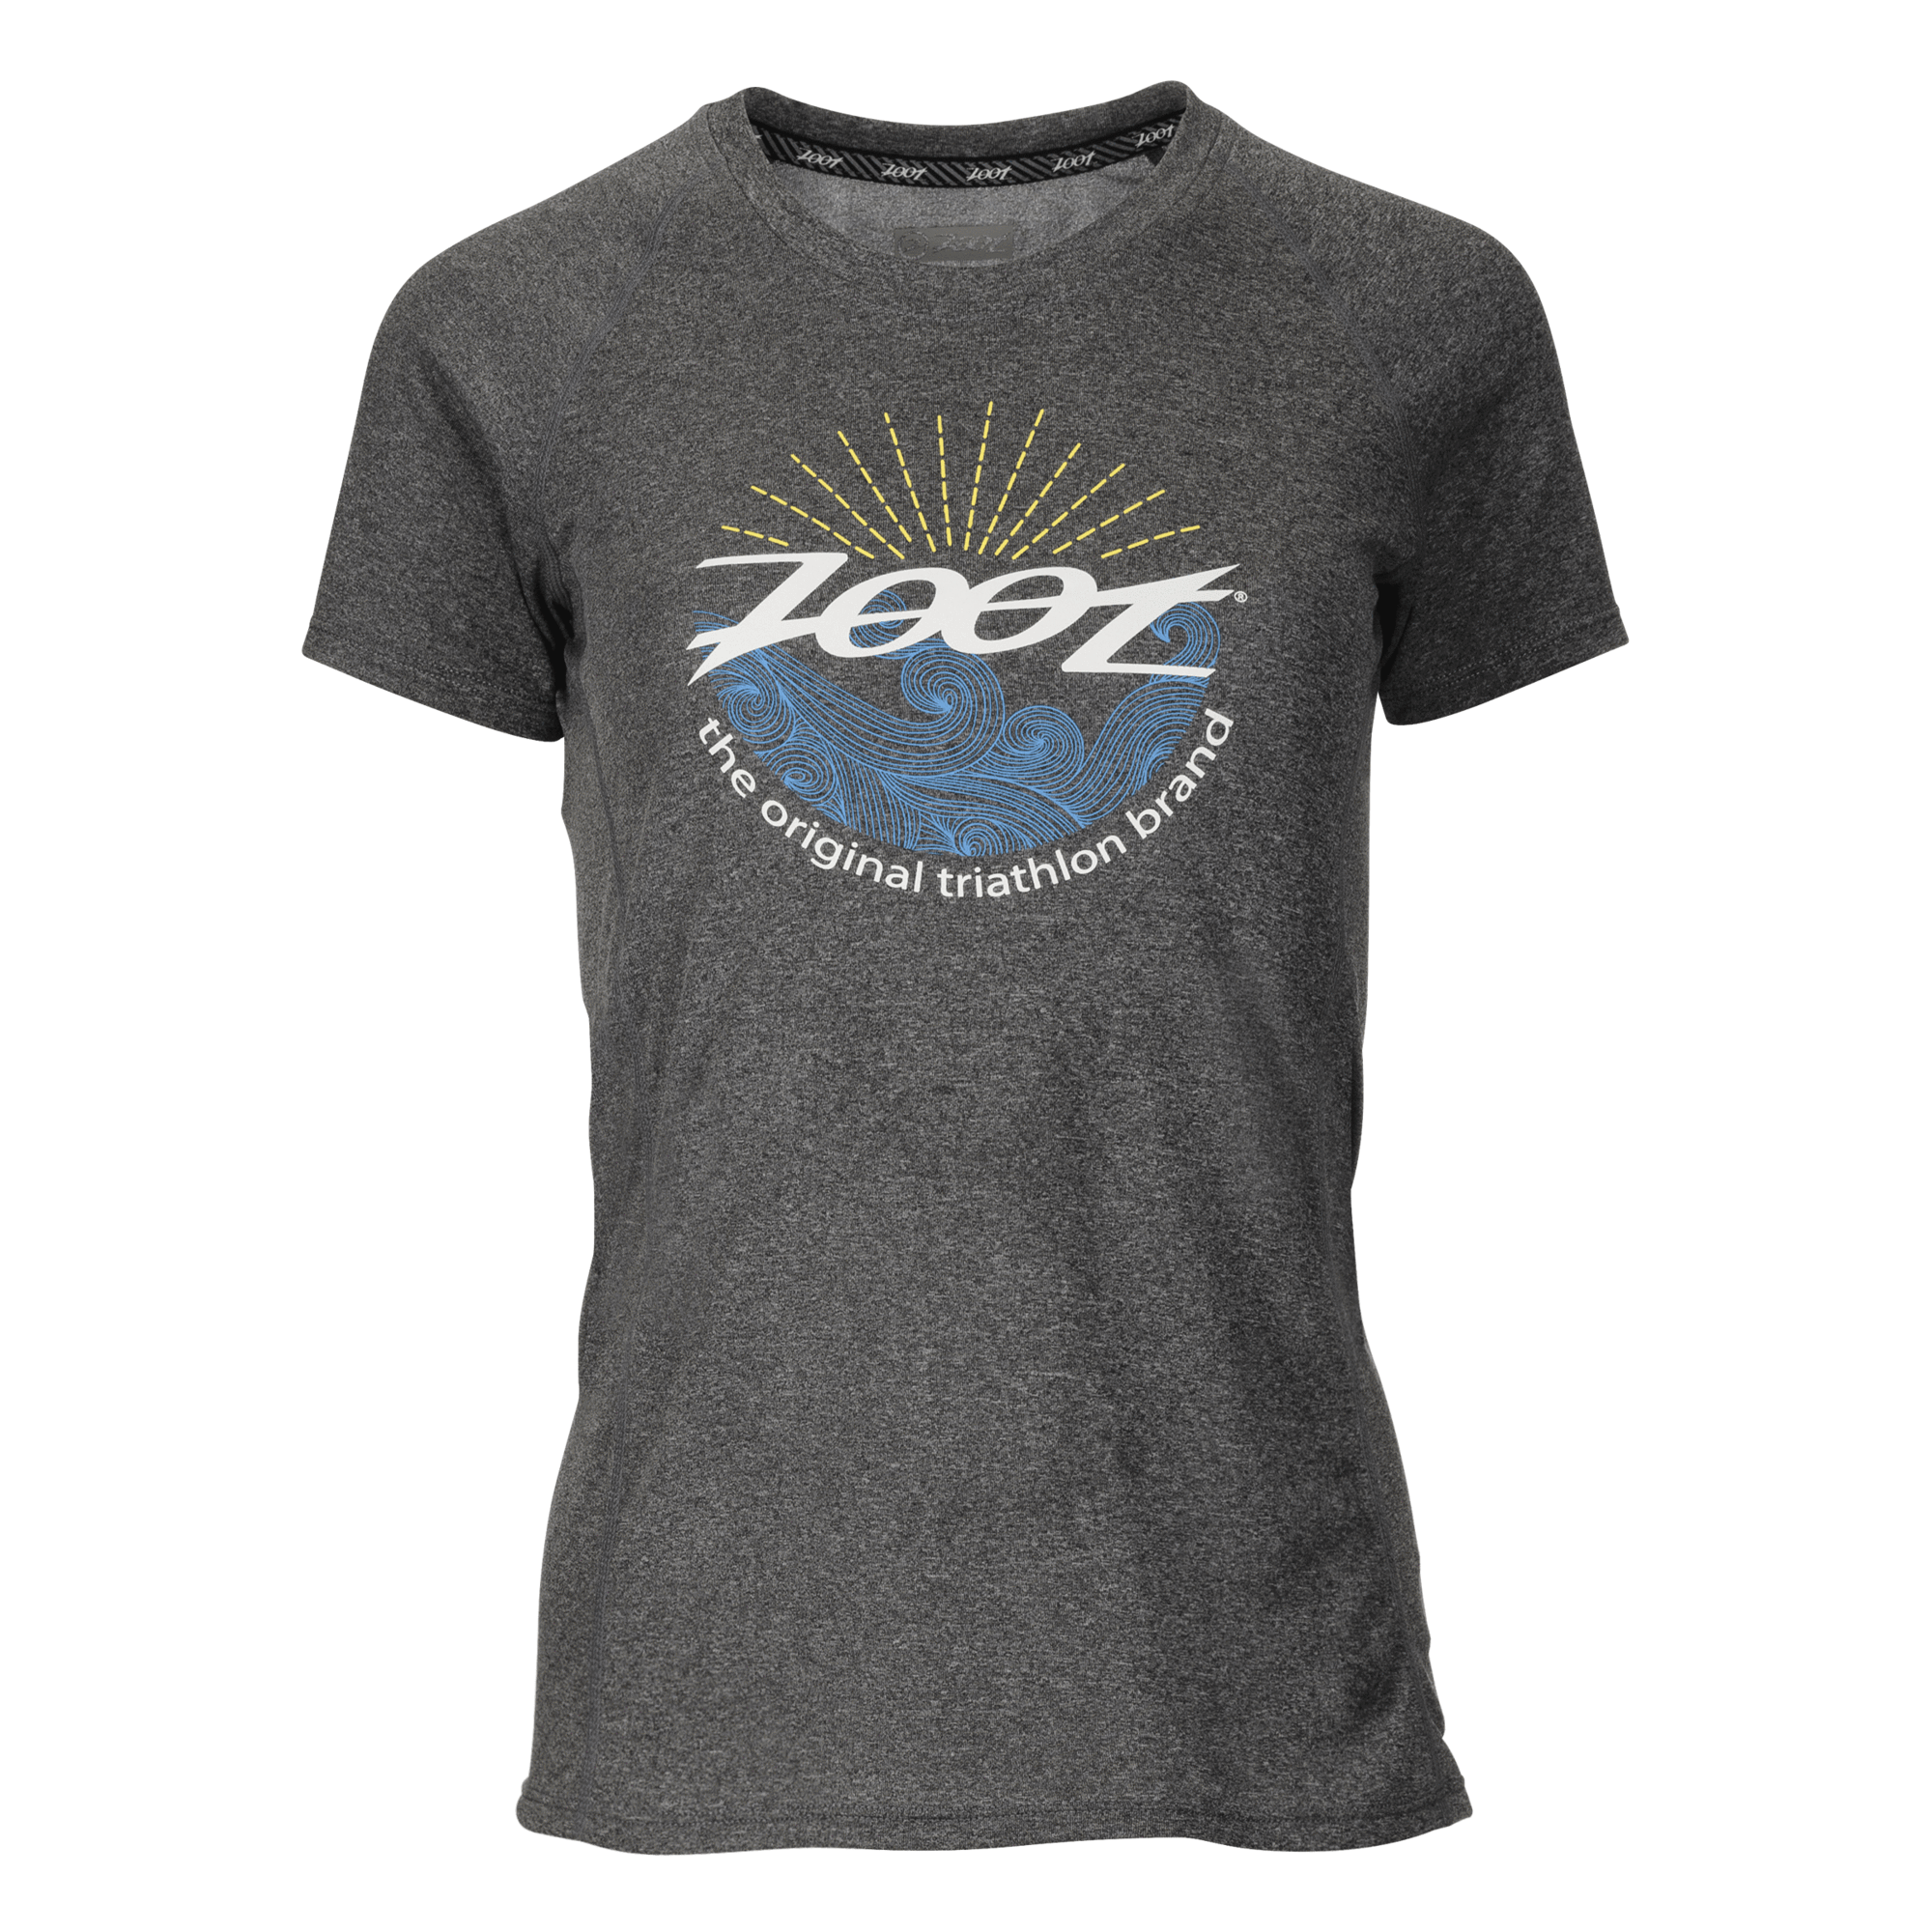 W ltd run sunset chill out ink tee - rays in 2019 | Tshirt